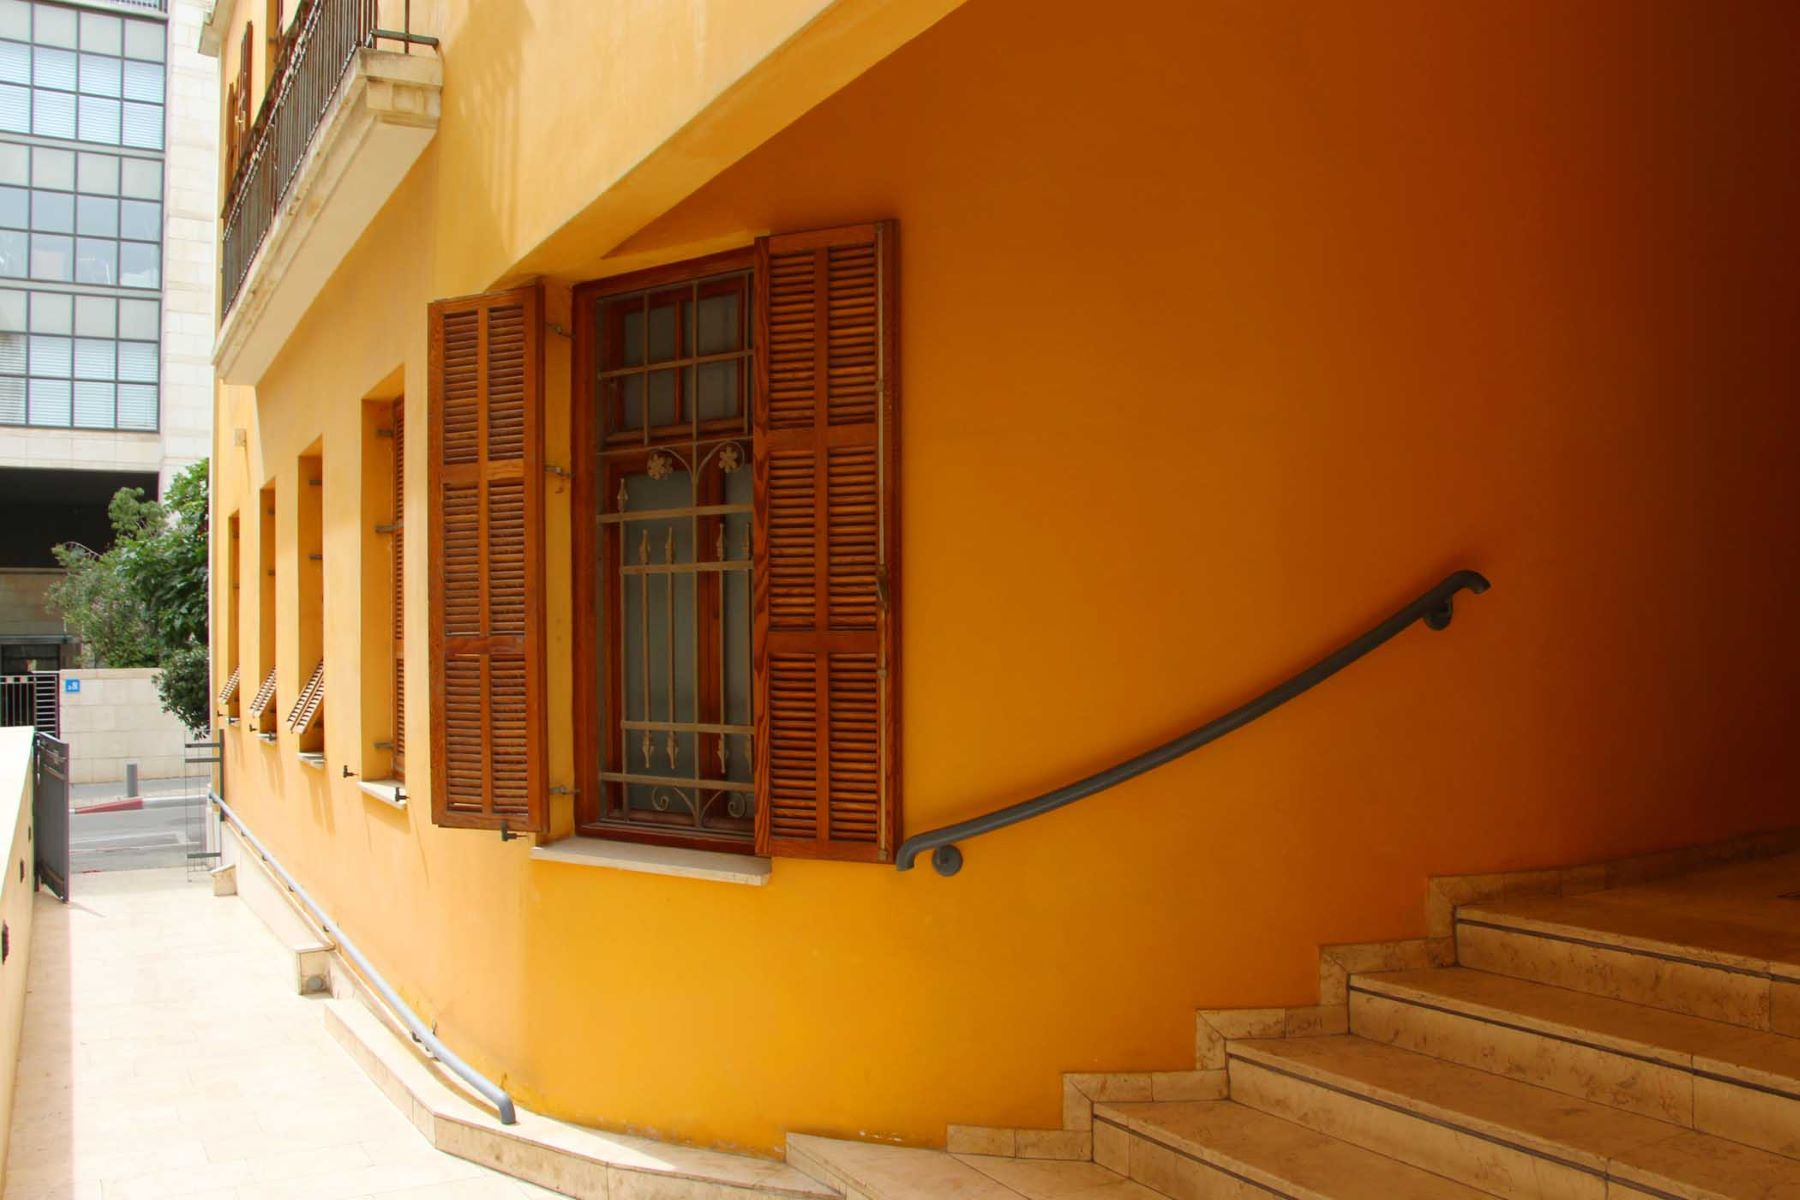 Additional photo for property listing at Elegant Apartment in a Restored Building Tel Aviv, Israel Israel